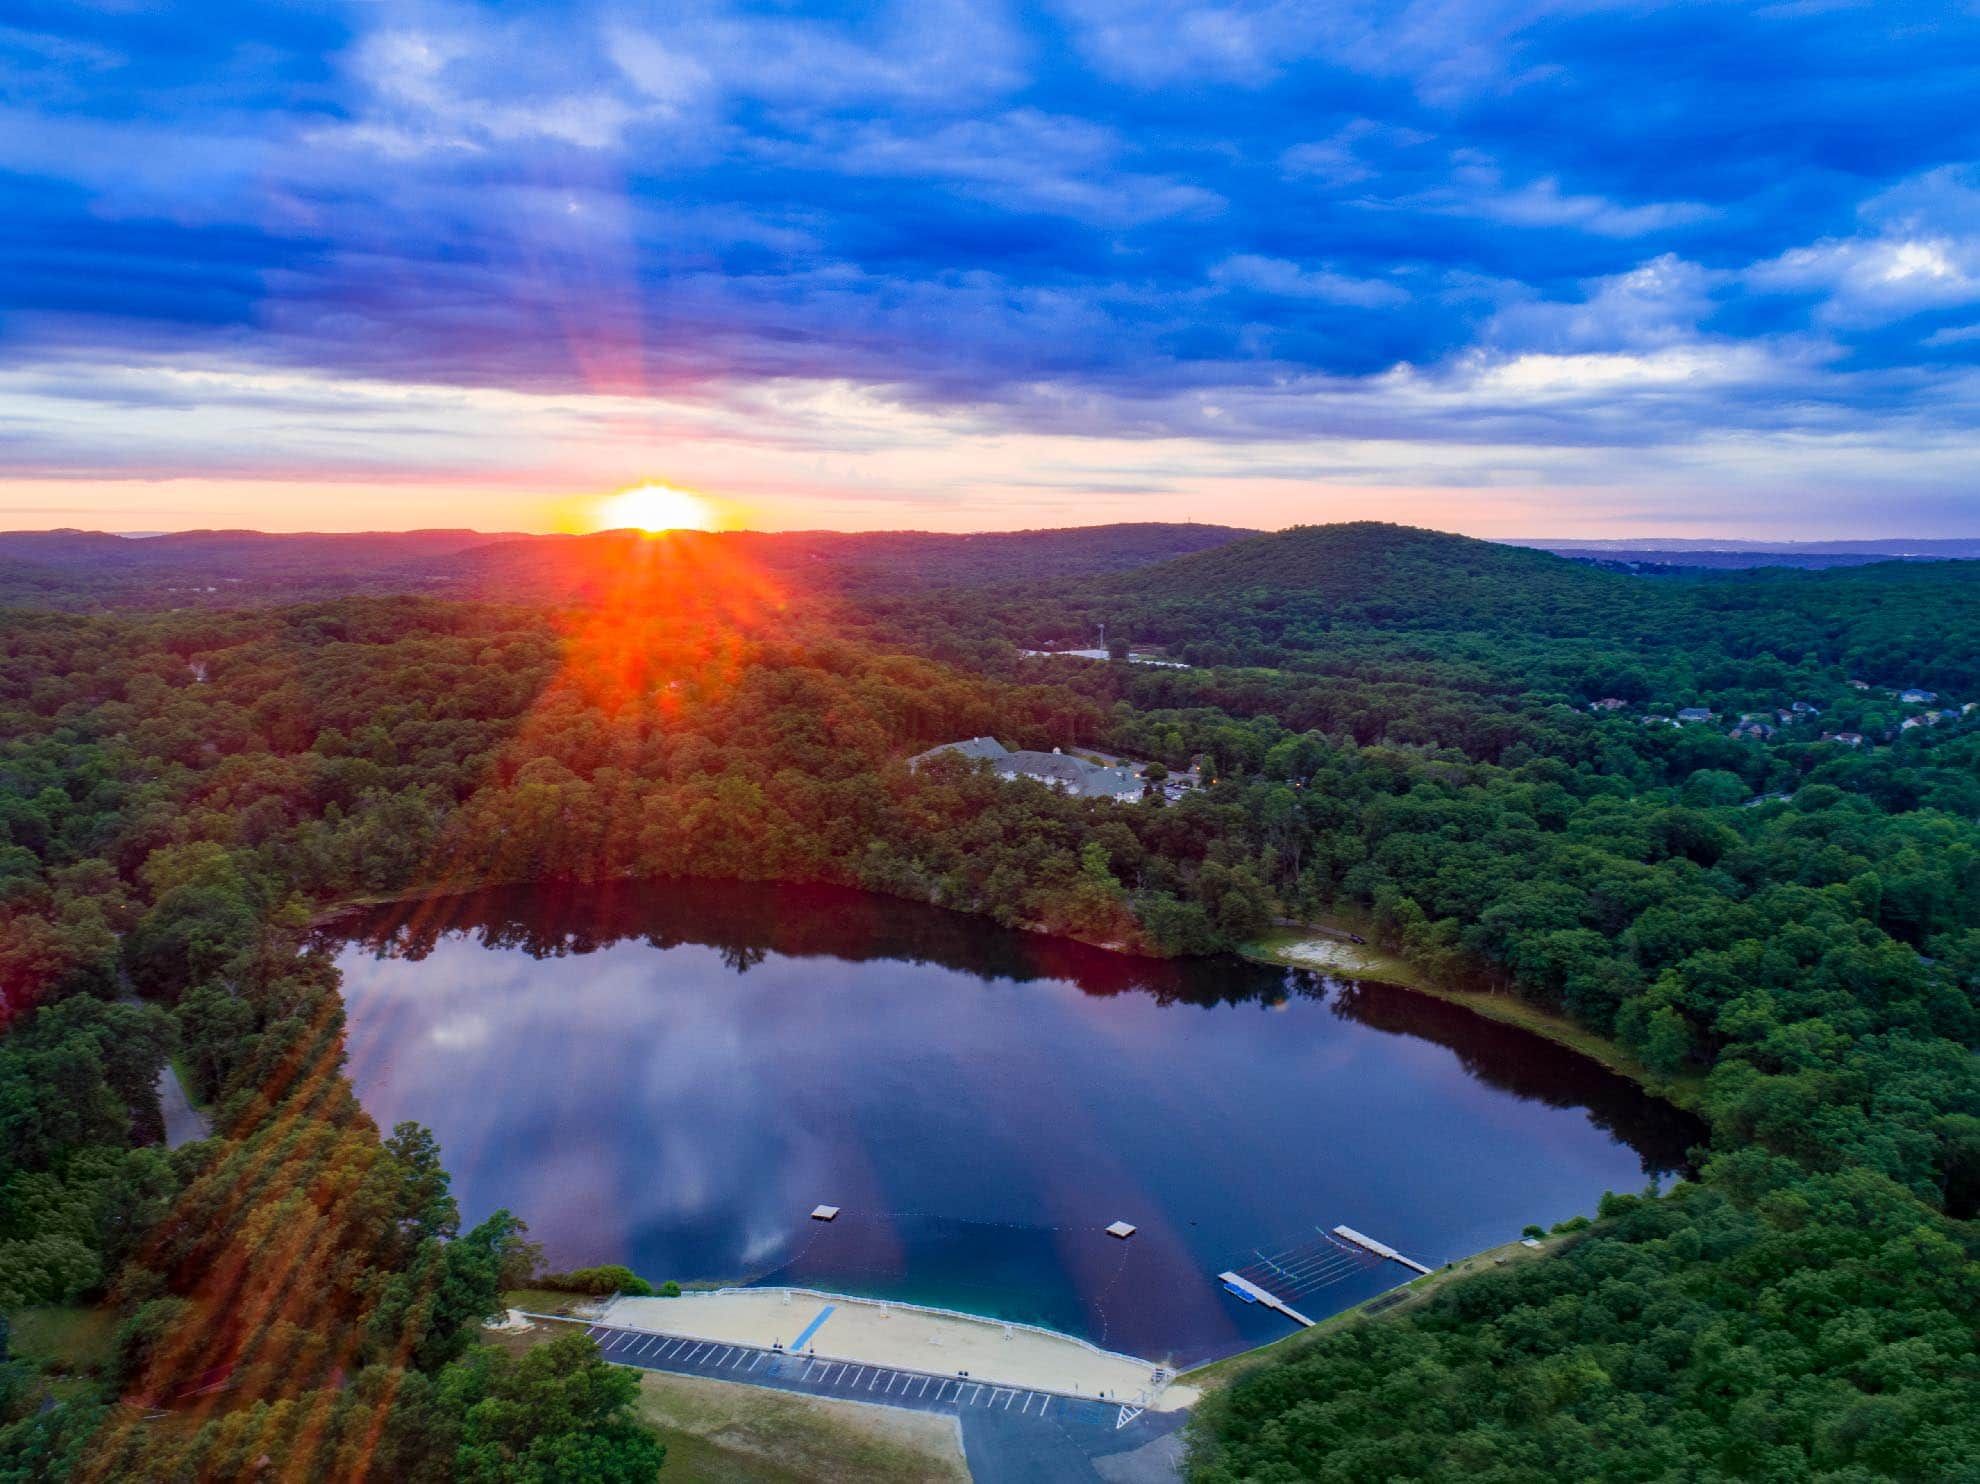 Photograph of sunrise over Cooks Pond Denville NJ taken with a drone